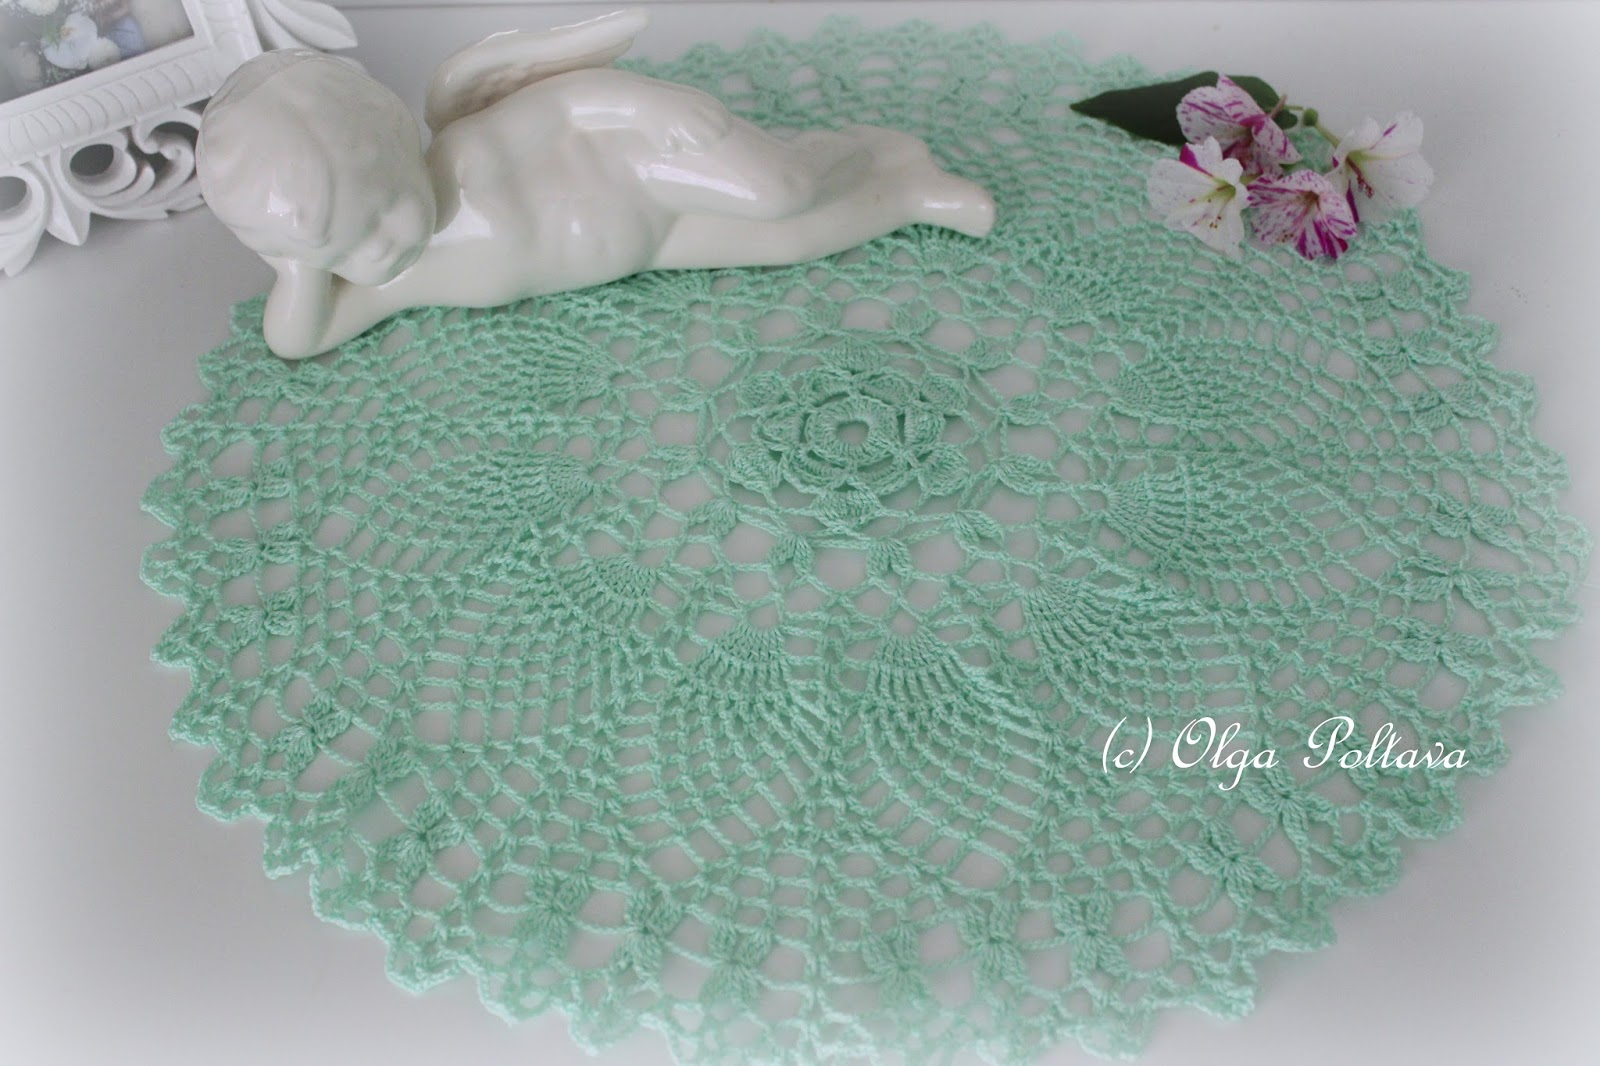 Lacy Crochet: Mint Pineapples Doily, Free Vintage Doily Pattern